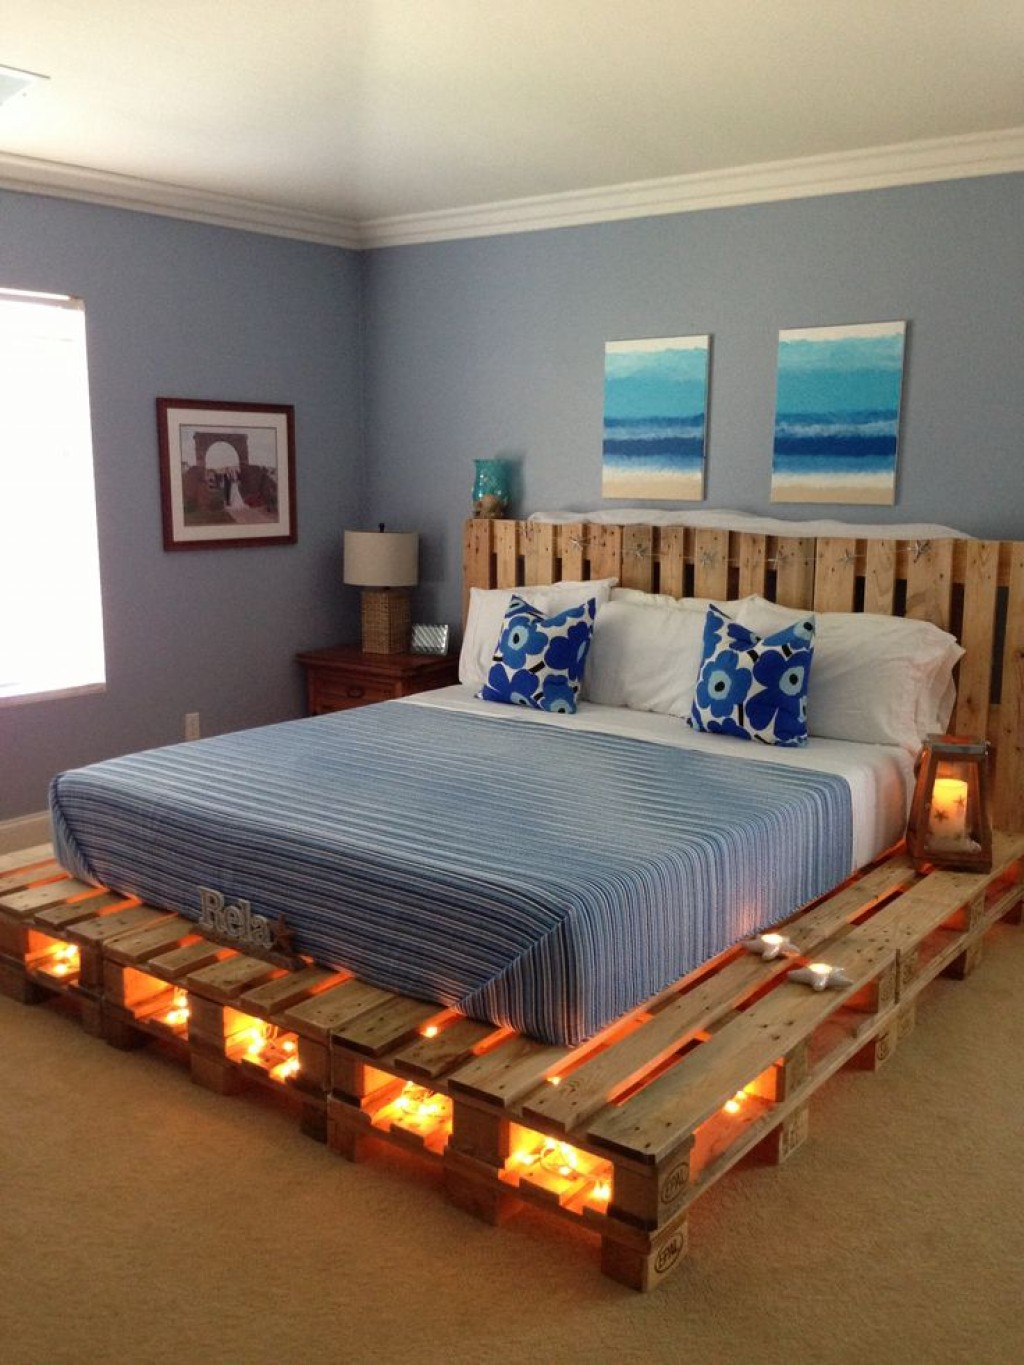 String lights in the bottom of the pallet bed frame